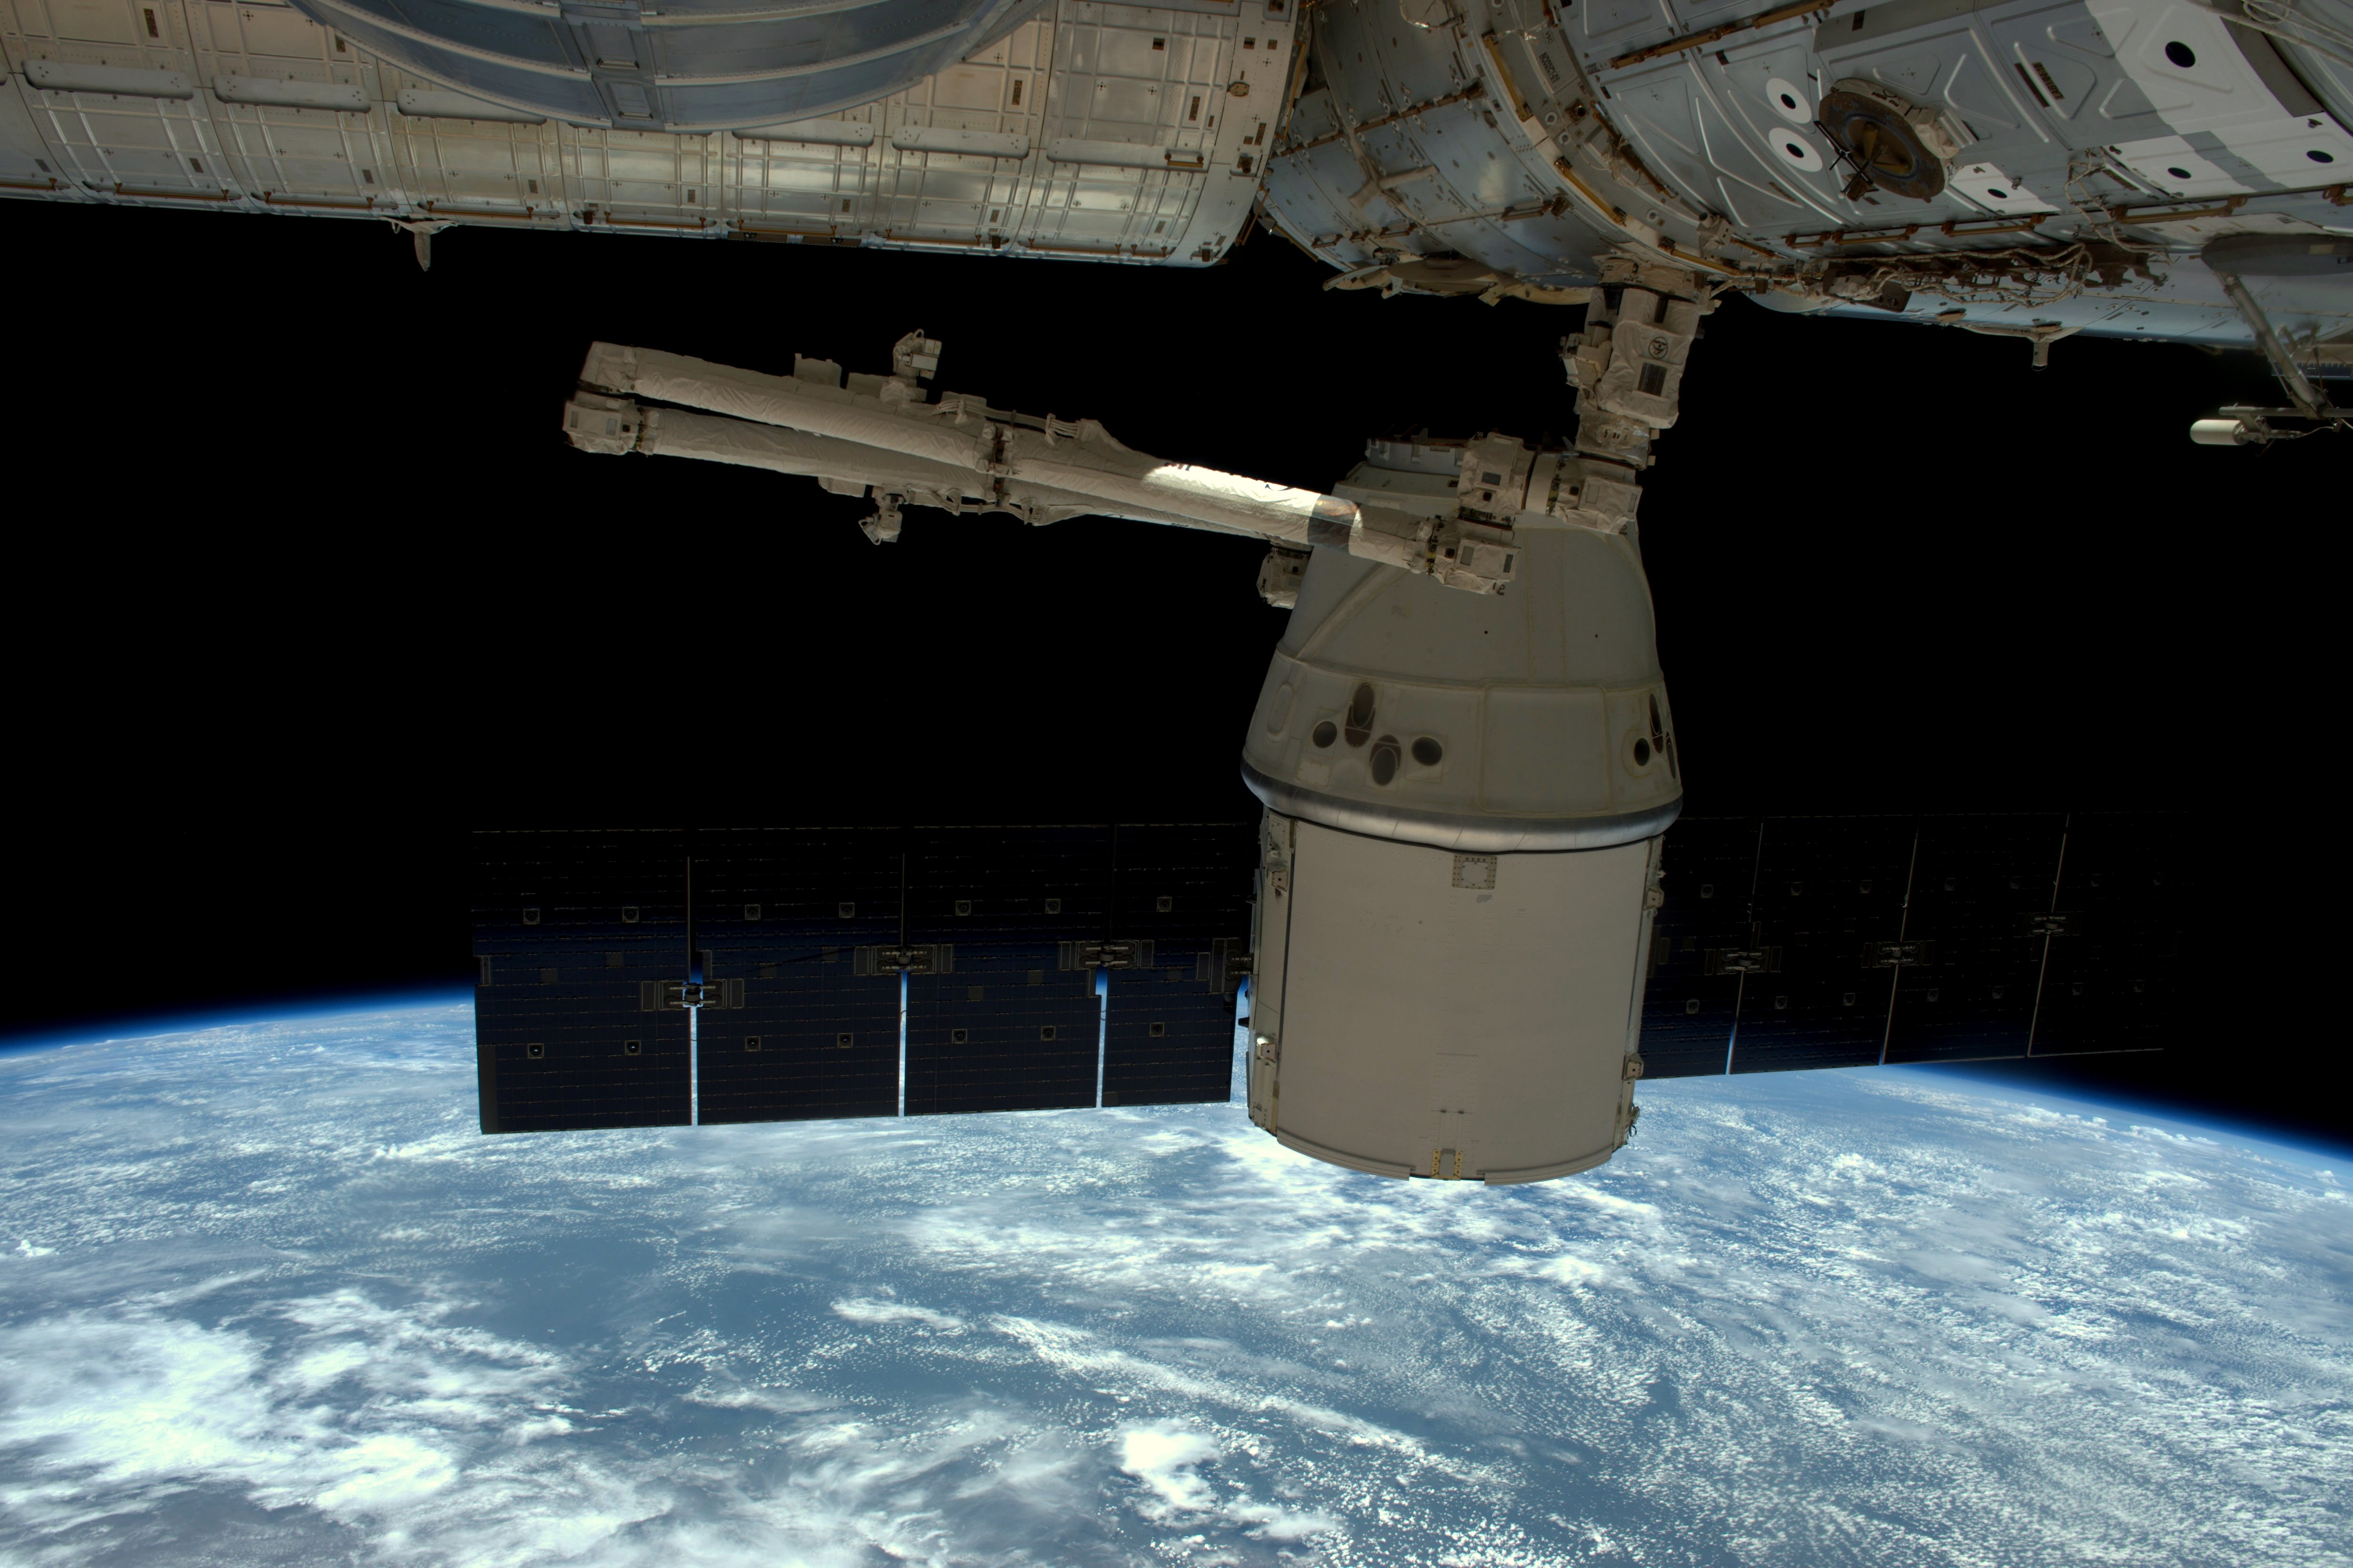 Full of Science, Dragon Spacecraft Undocks for Return to ...